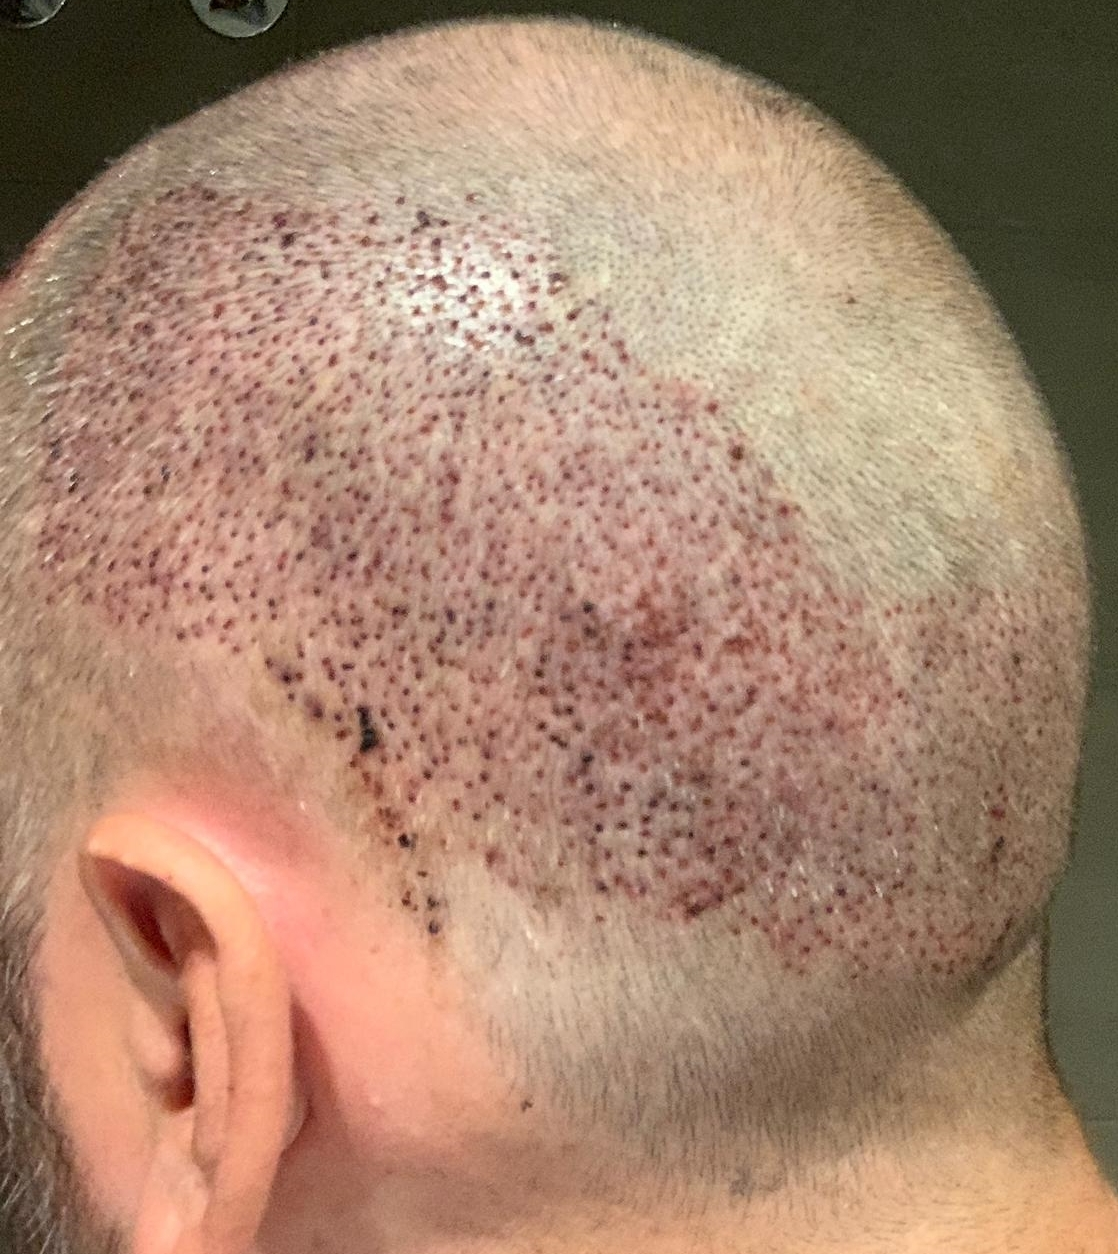 1 Day Post FUE Healing